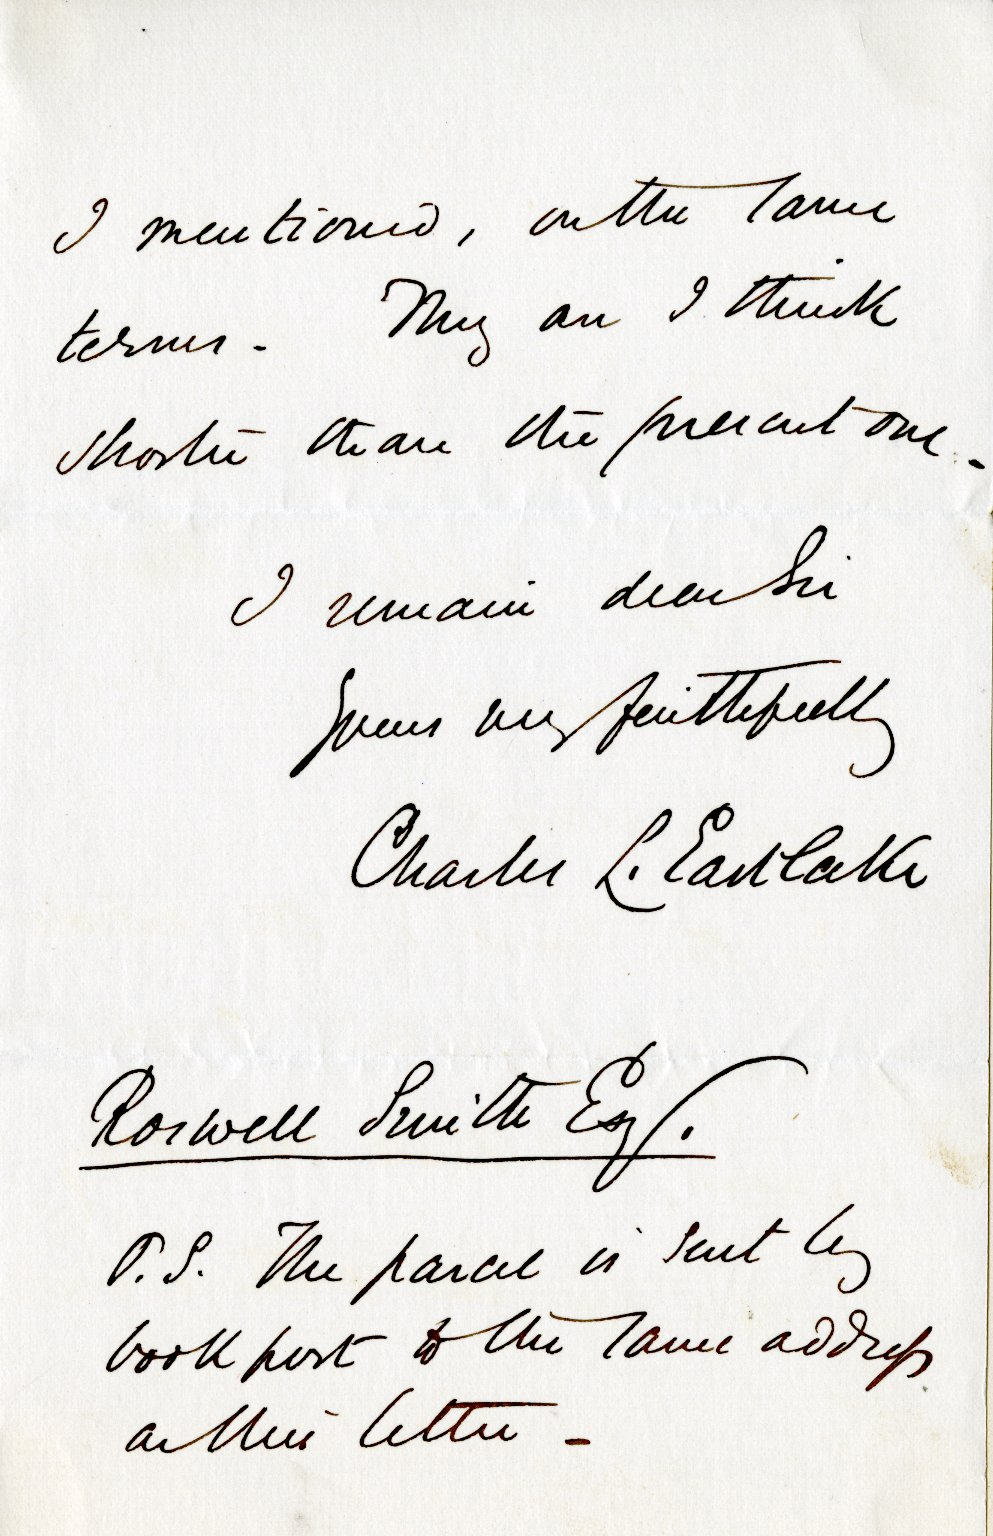 Eastlake, Charles to Roswell Smith, ALS, 3 pages, February 2, 1878.